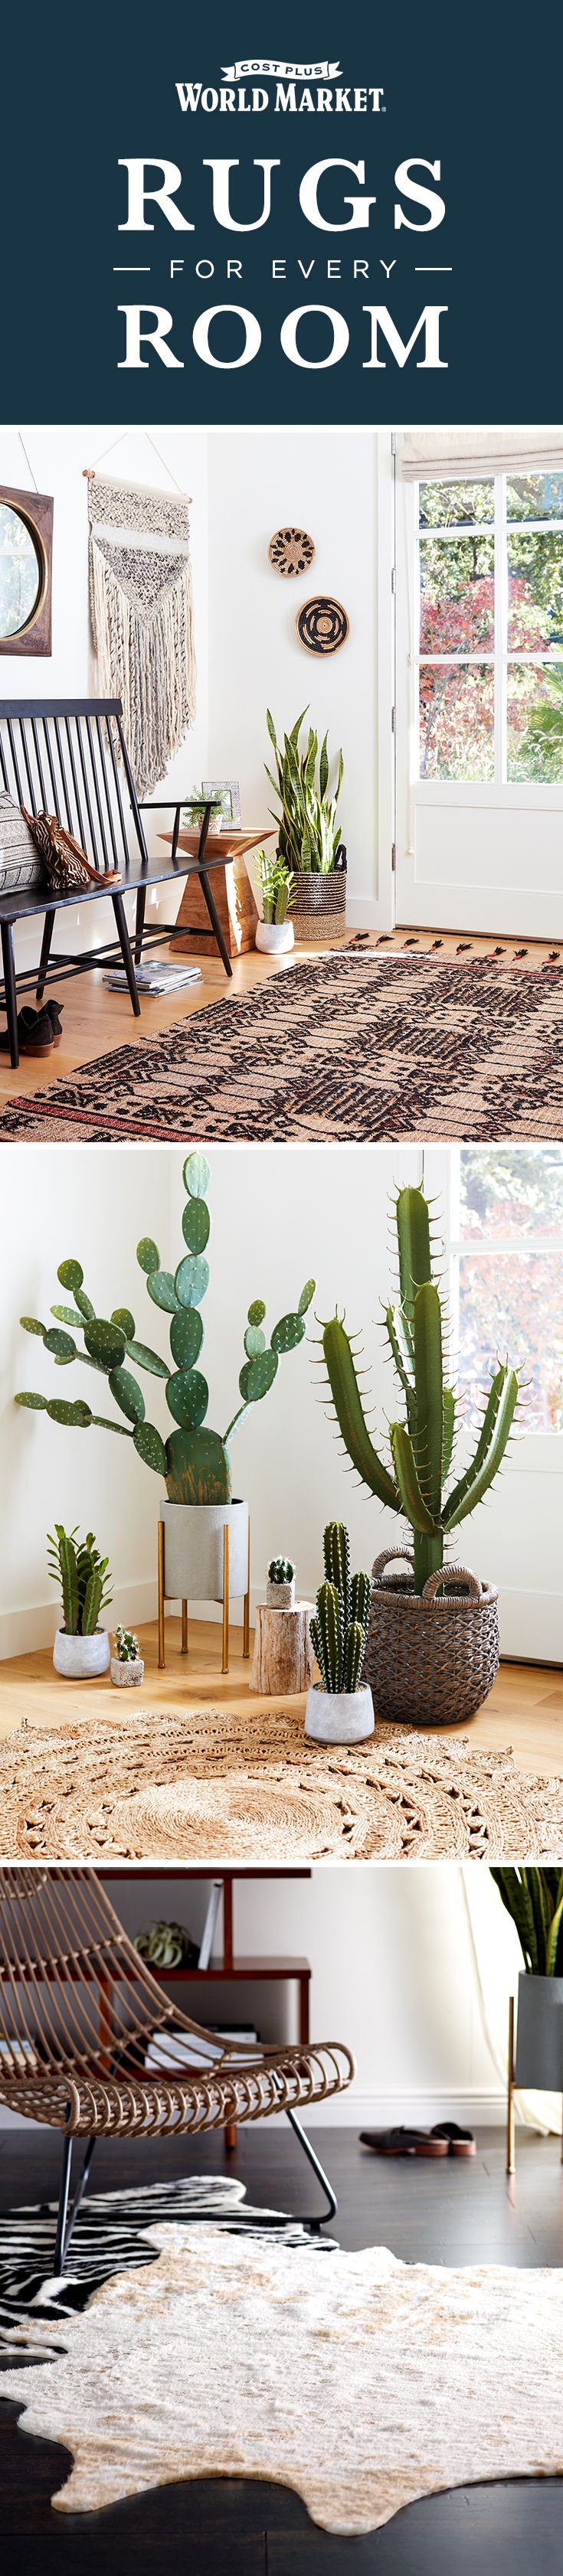 Natural materials, eye-catching designs, unique textures––whatever you're looking for in a rug, we've got a style to match your taste on sale right now during the Rug Caravan at Cost Plus World Market!